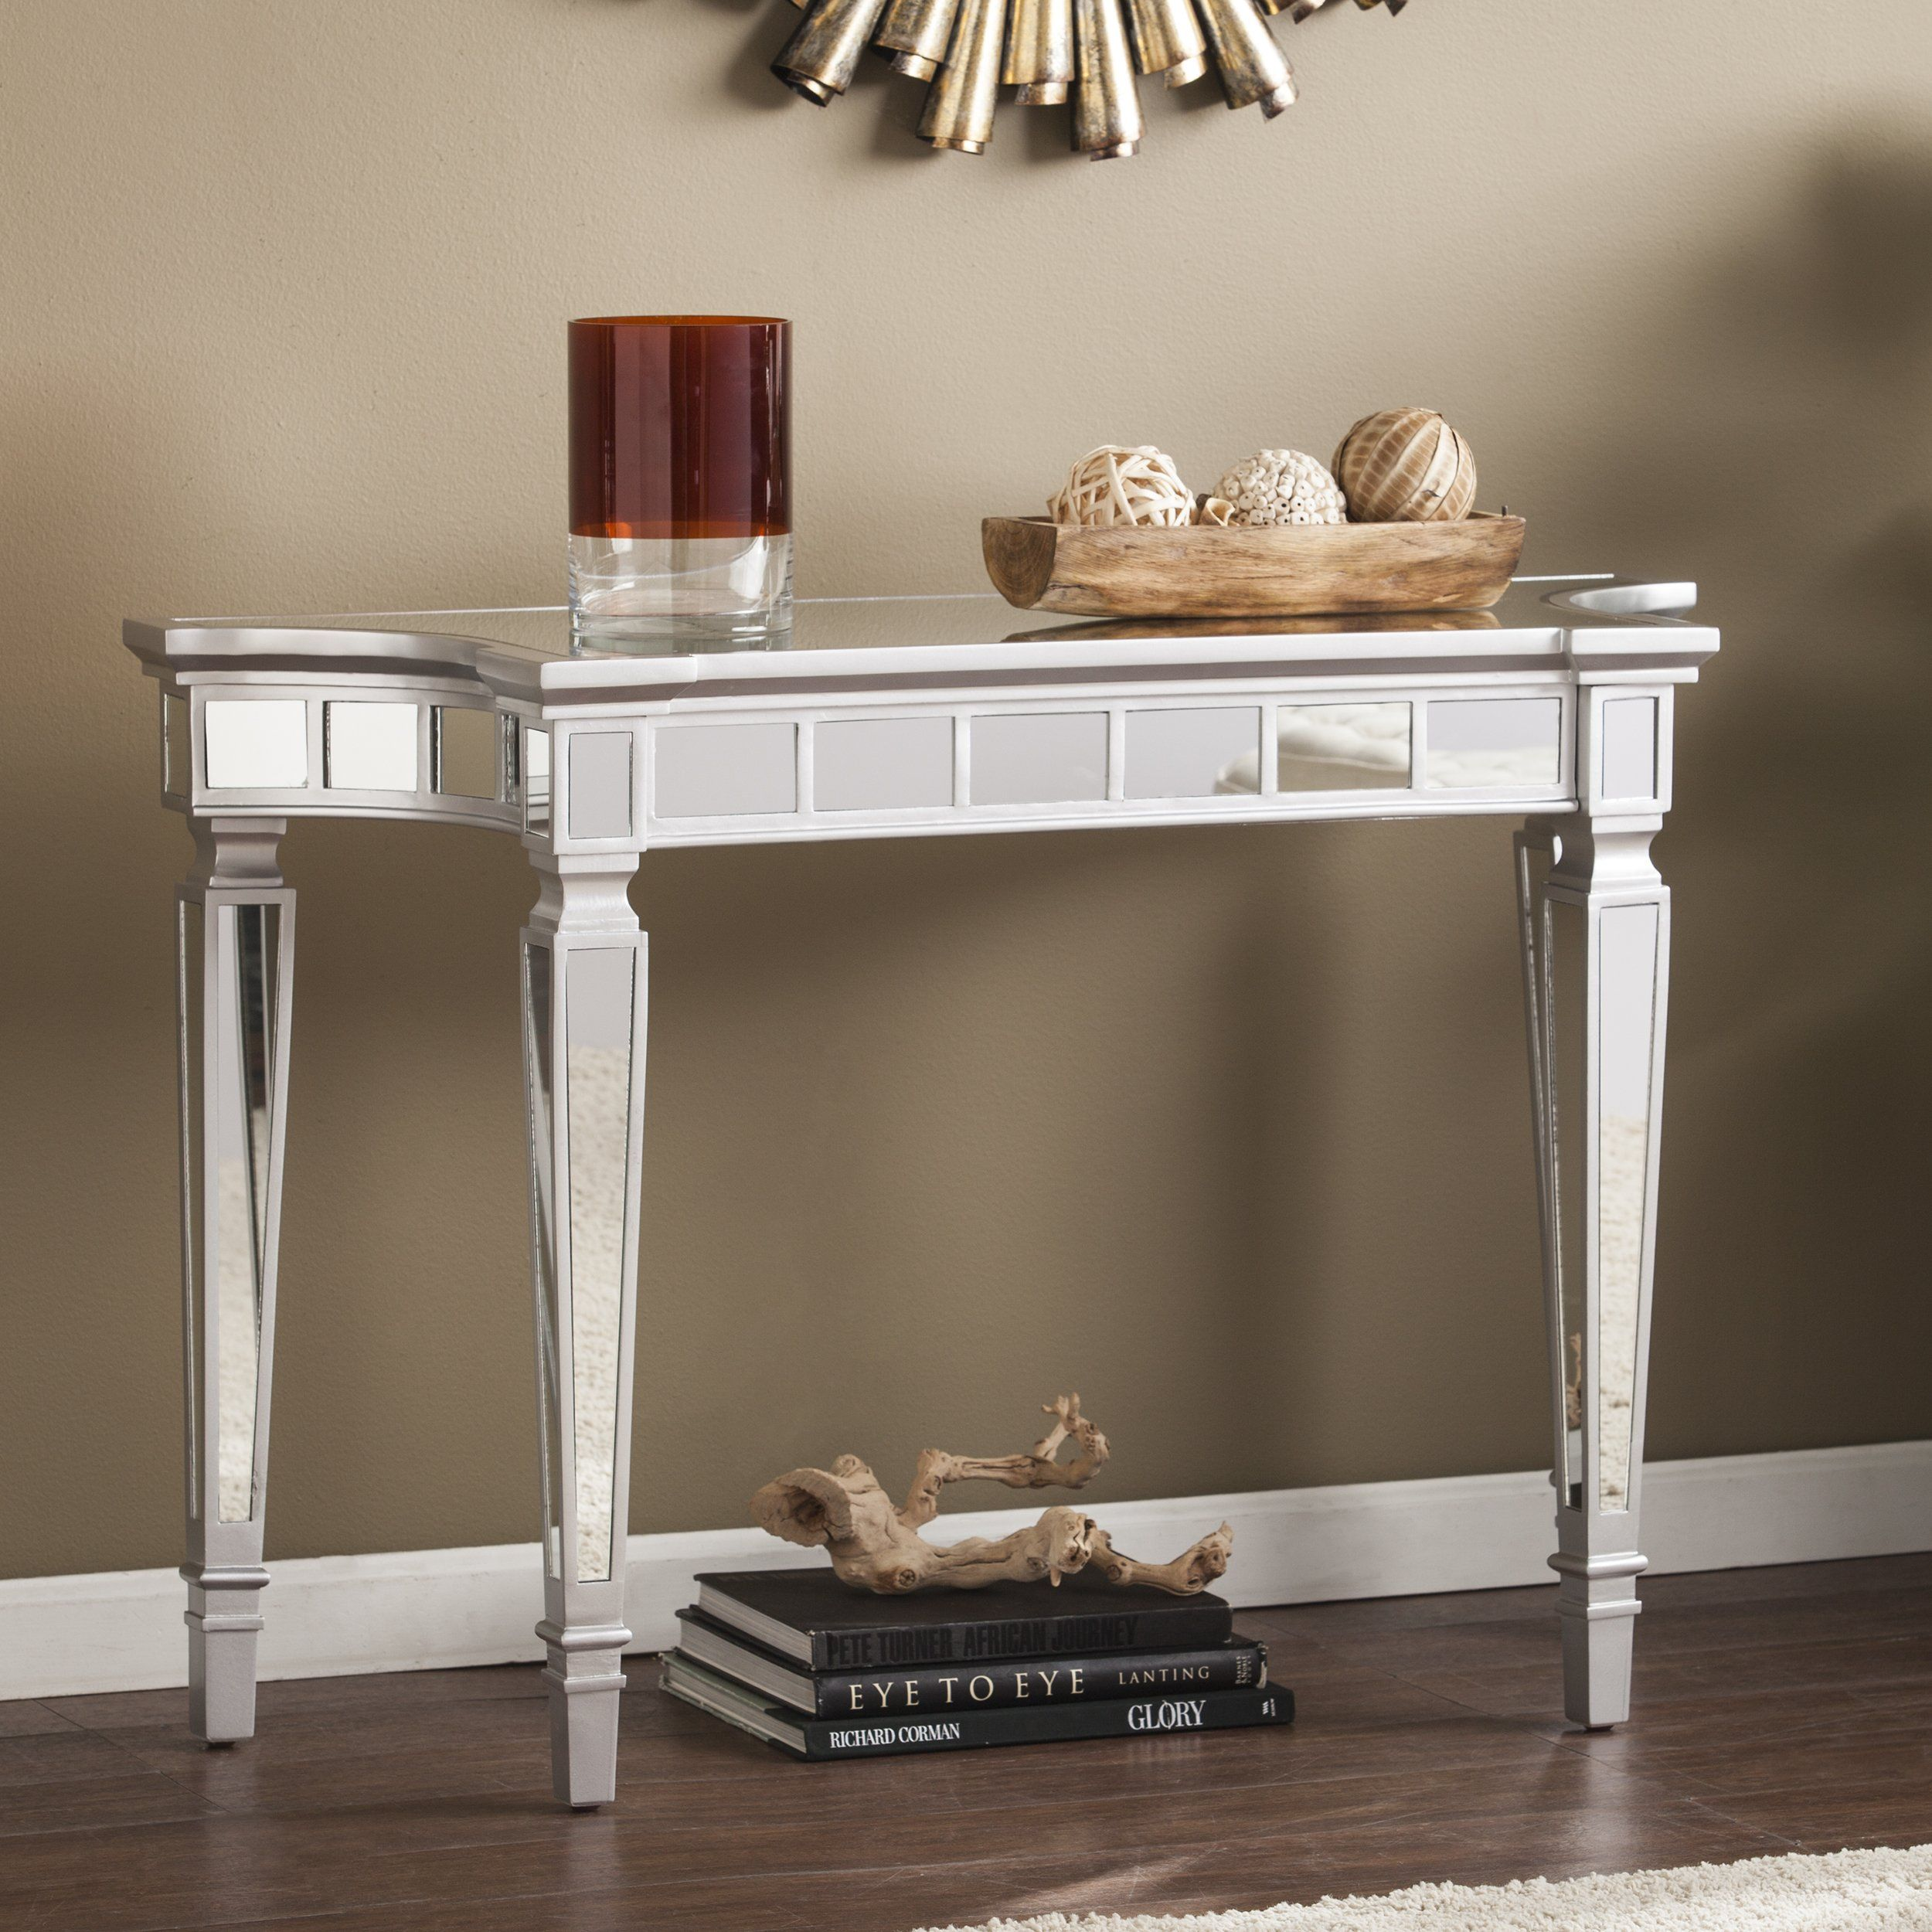 T1840 A Sophie Silver Mirrored Living Room Hallway Sofa Table Mirrored Console Table Console Table Mirrored Furniture